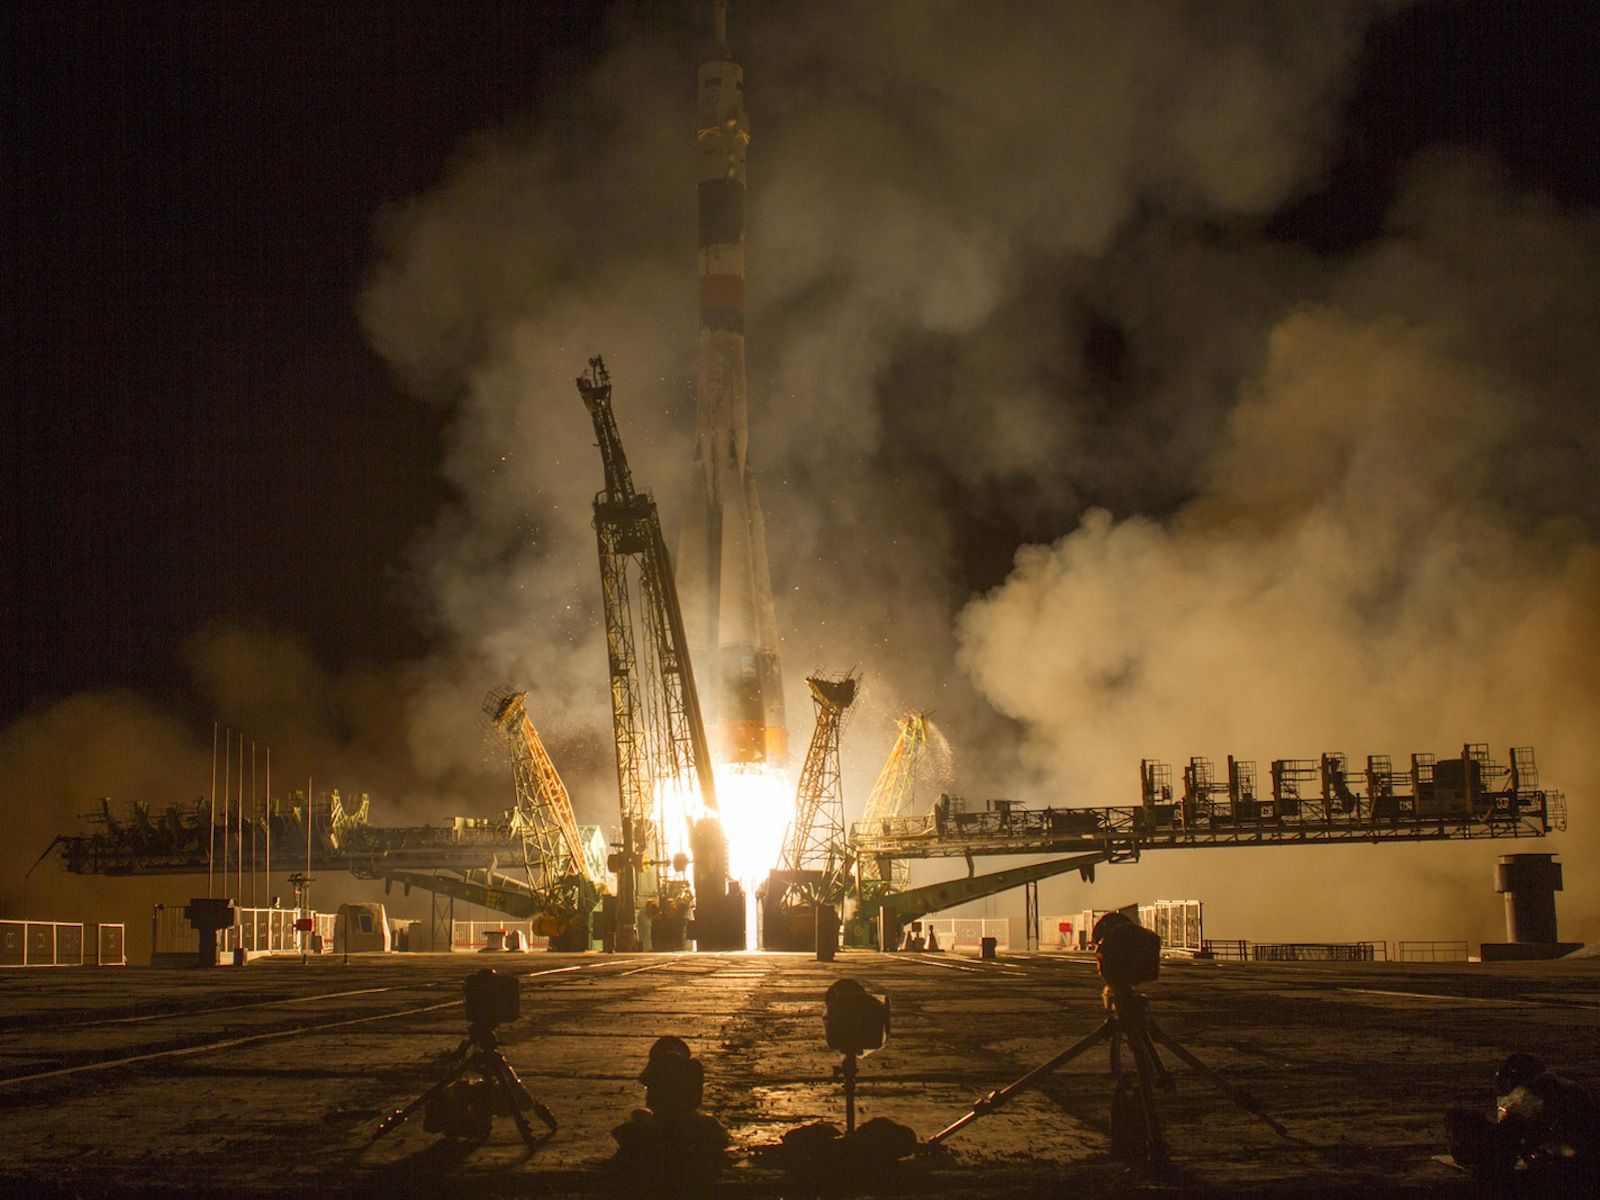 Expedition 37 Soyuz TMA-10M Rocket Launch